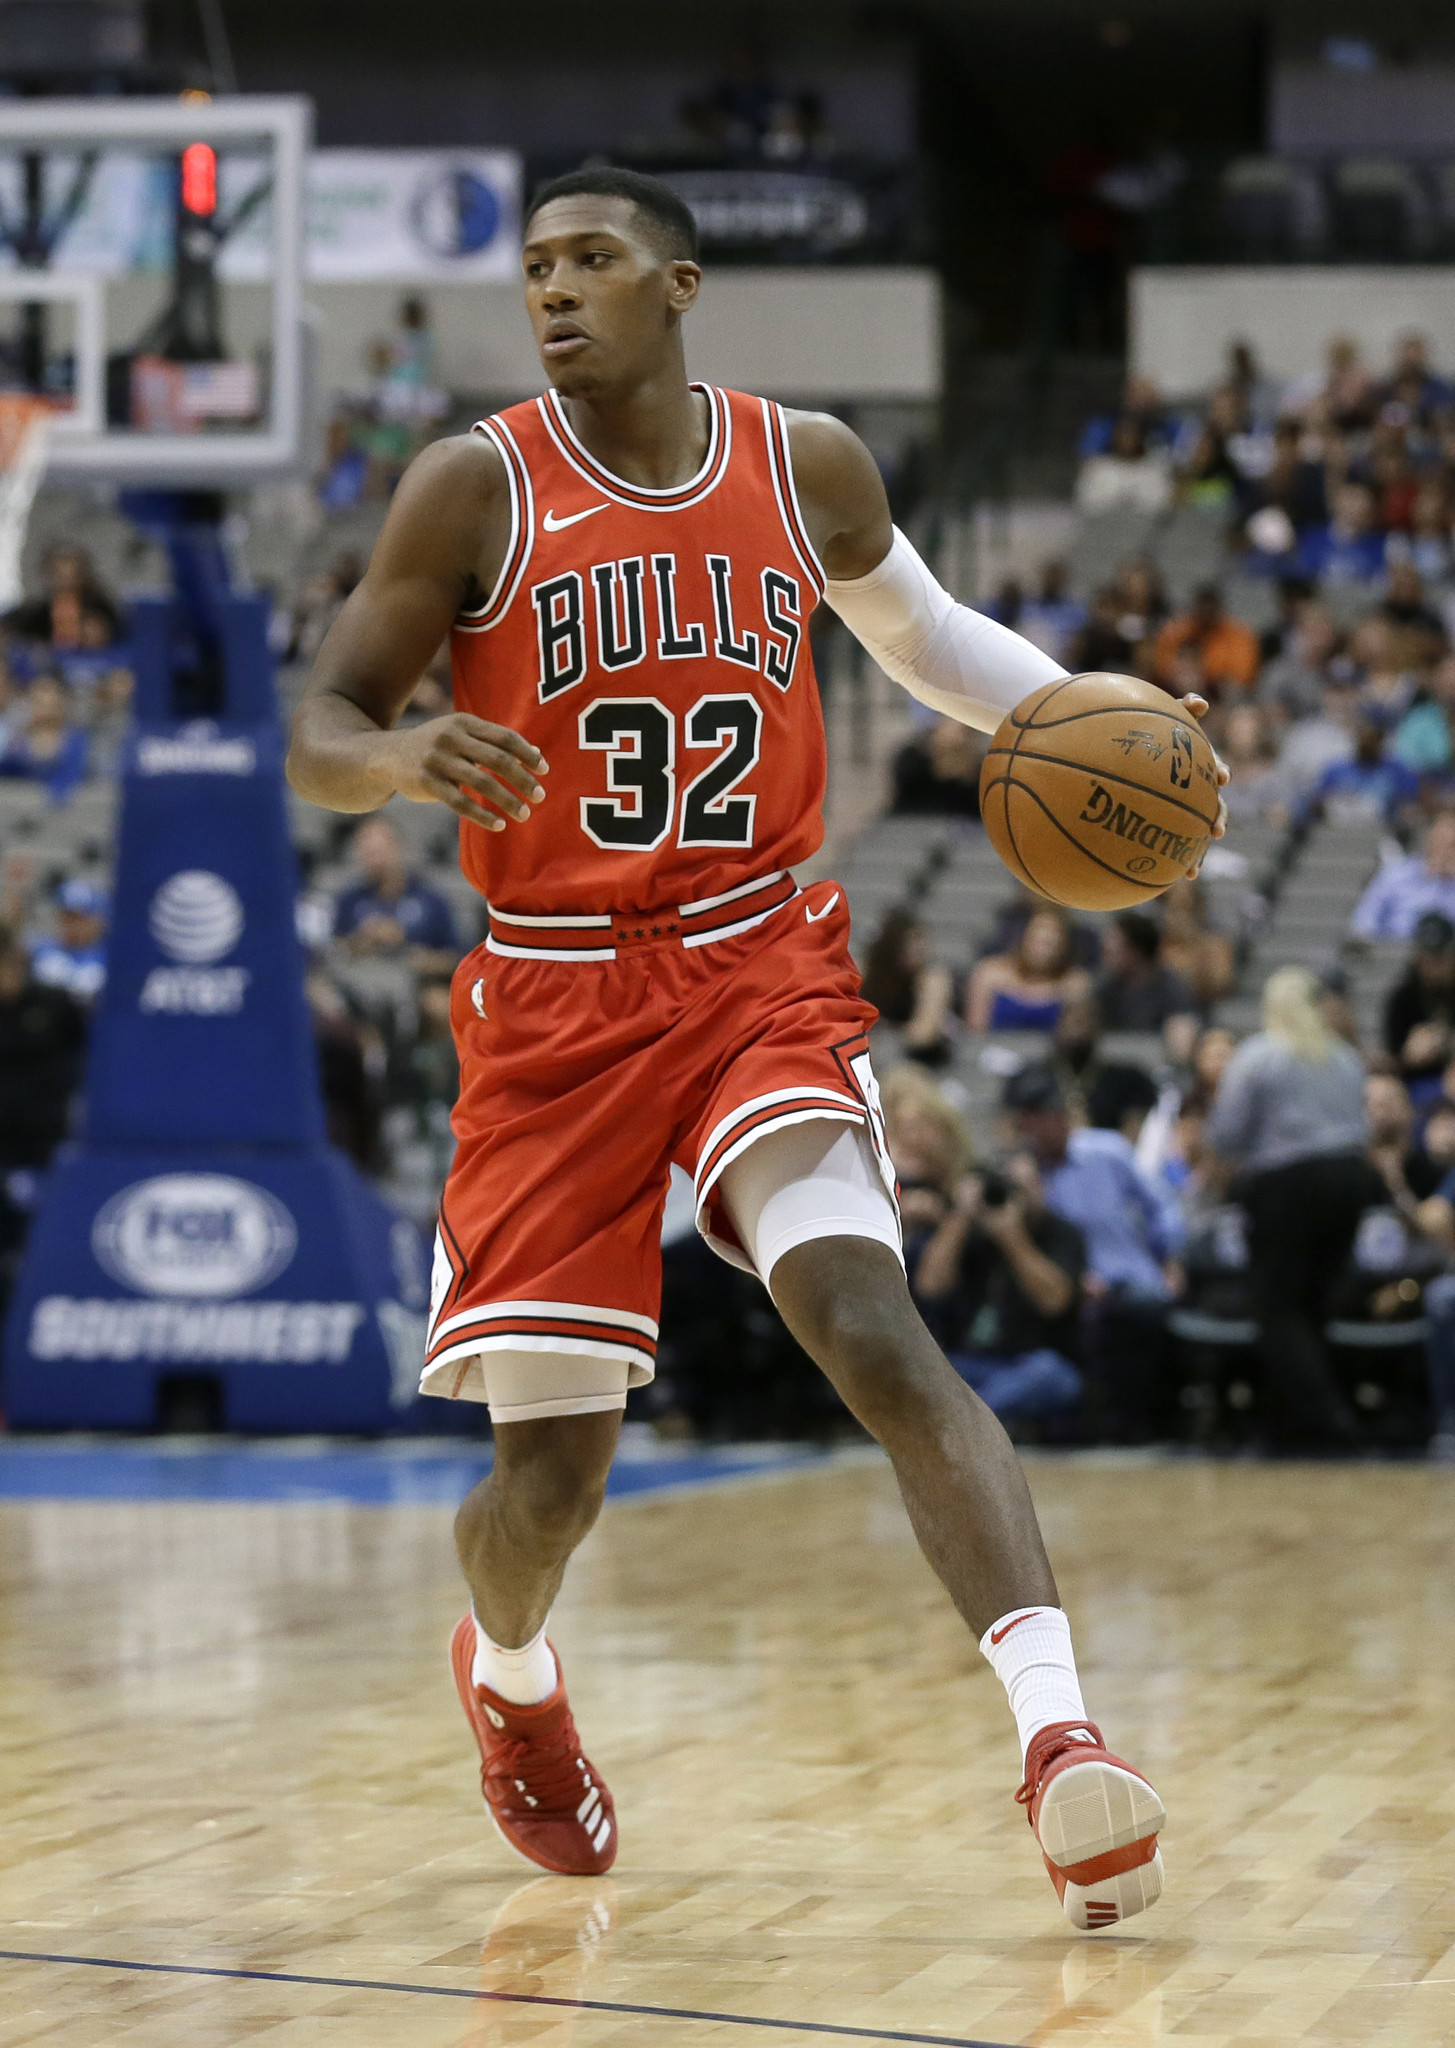 Ct-kris-dunn-finger-injury-bulls-spt-1013-20171012